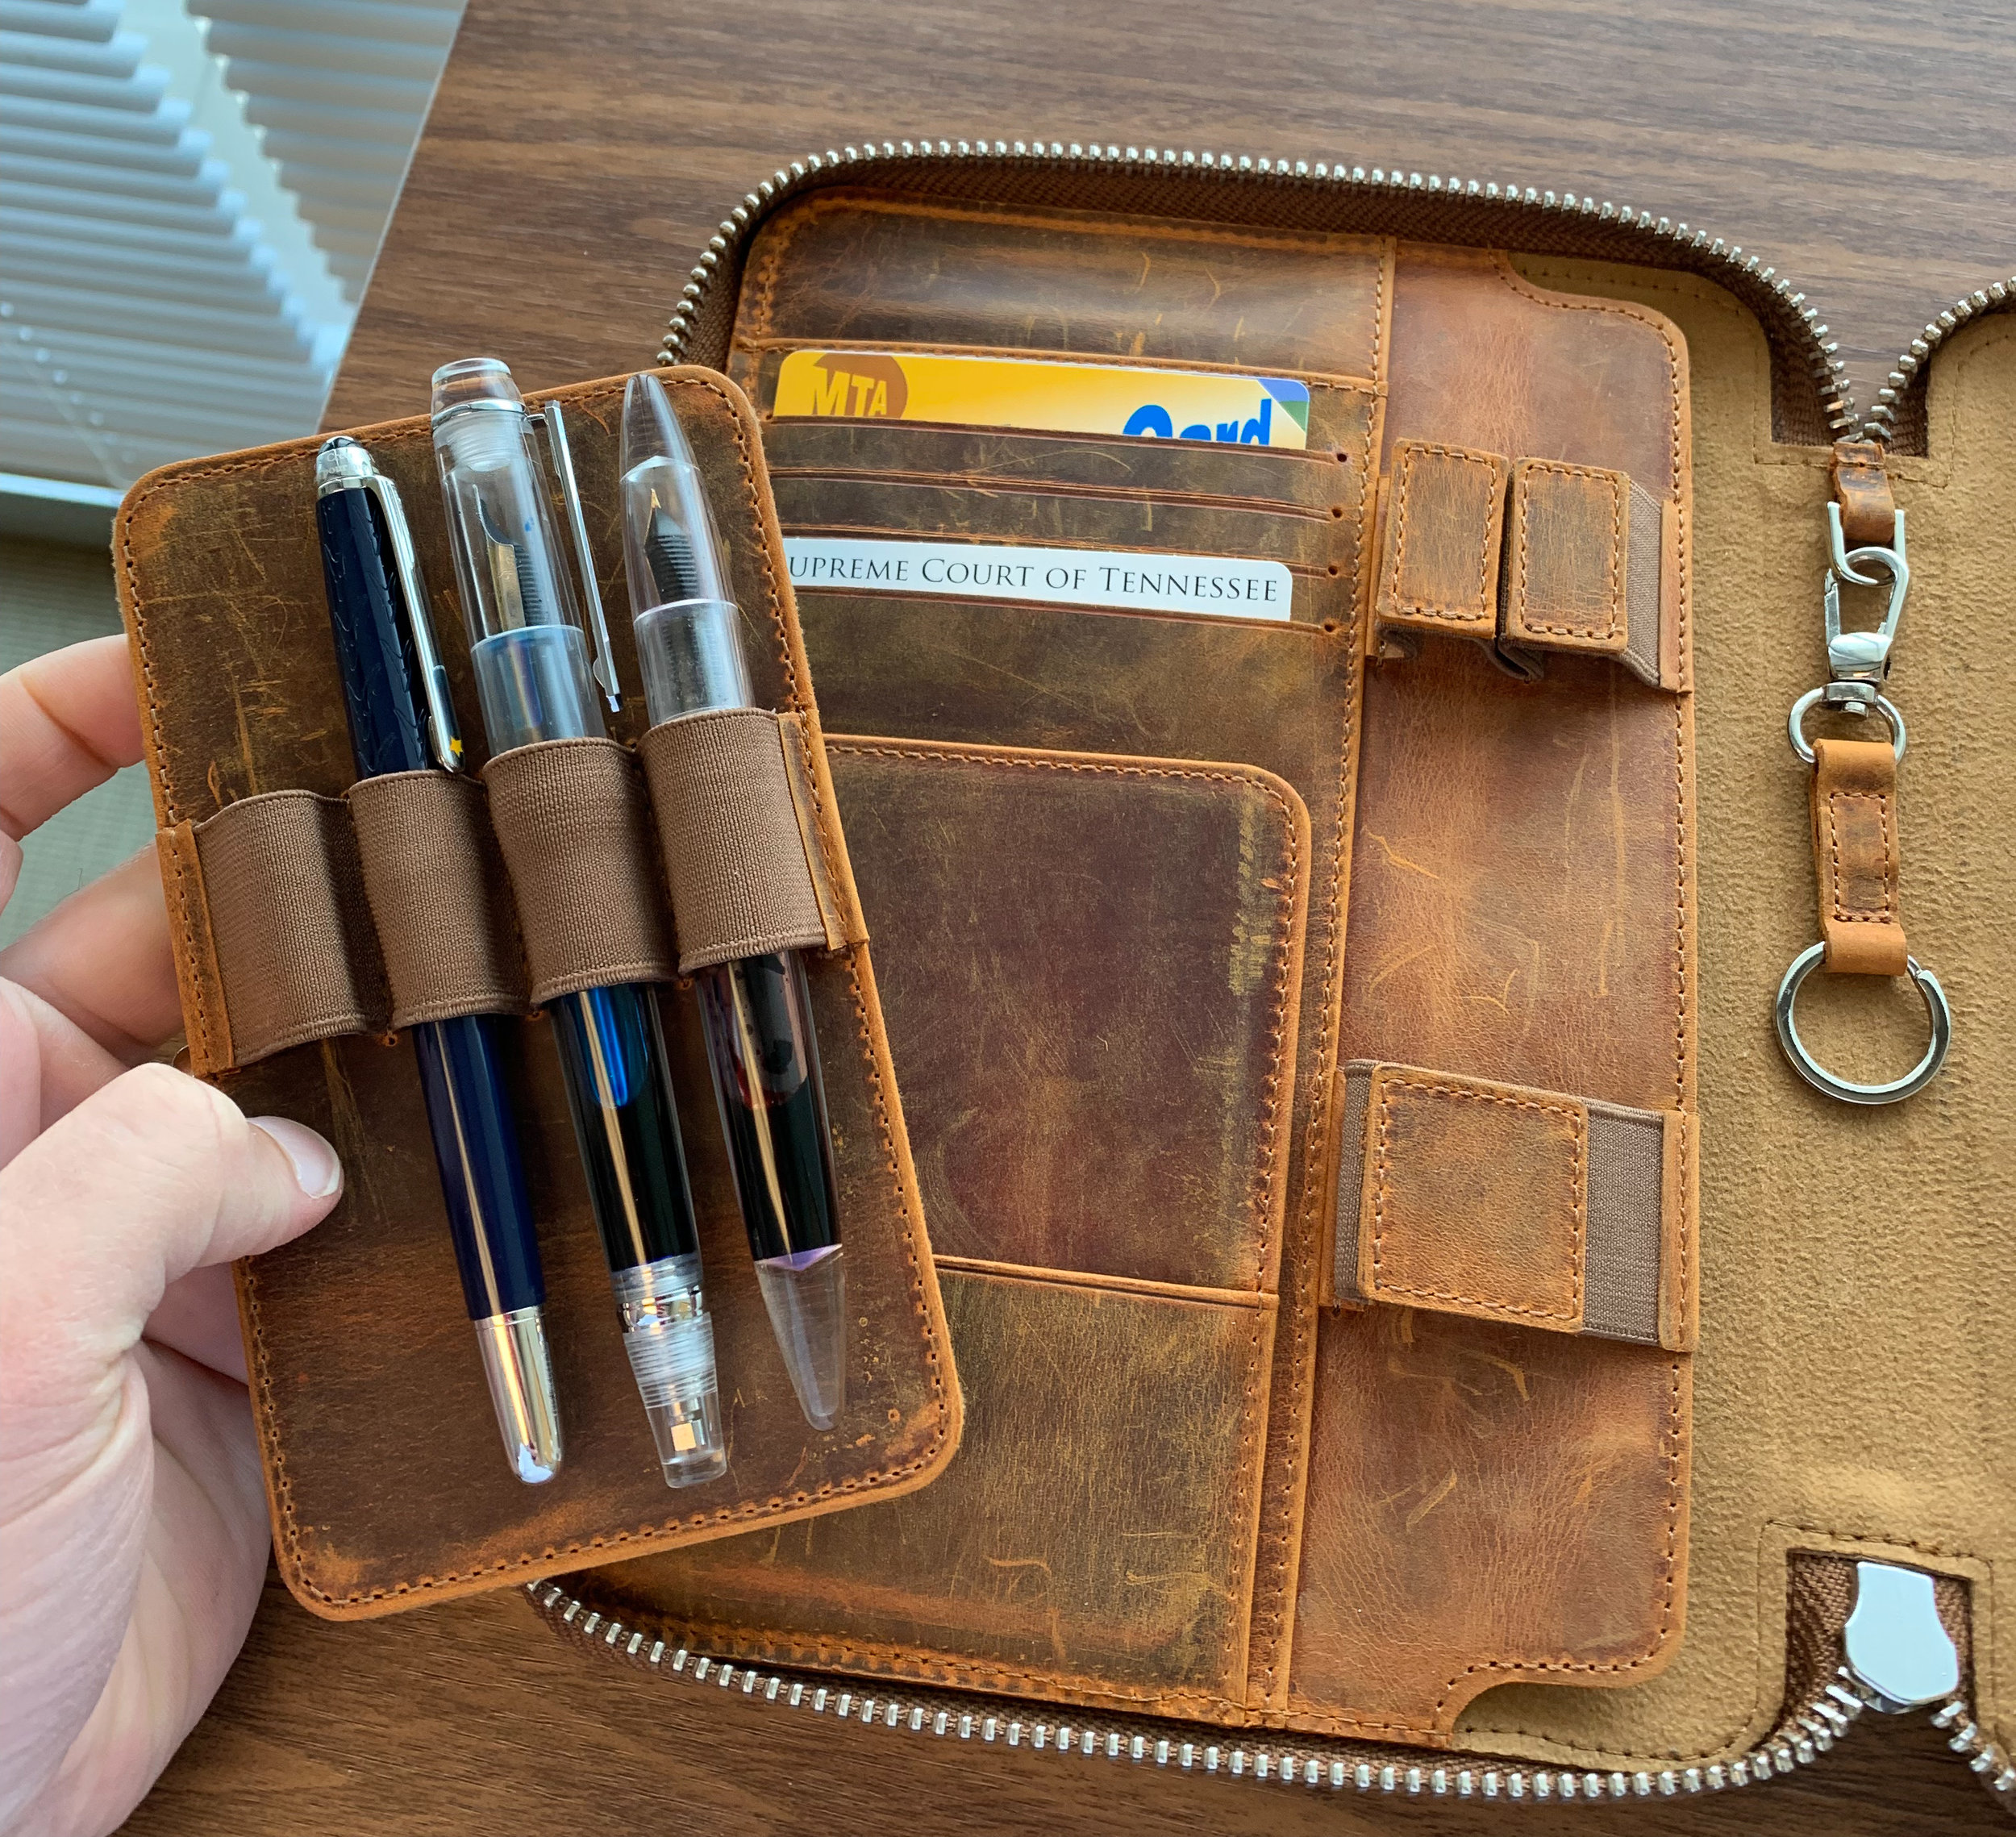 The pen-holder insert is removable, if you don't want to carry pens in your Zipfolio or just want to carry one or two pens in the larger loops.